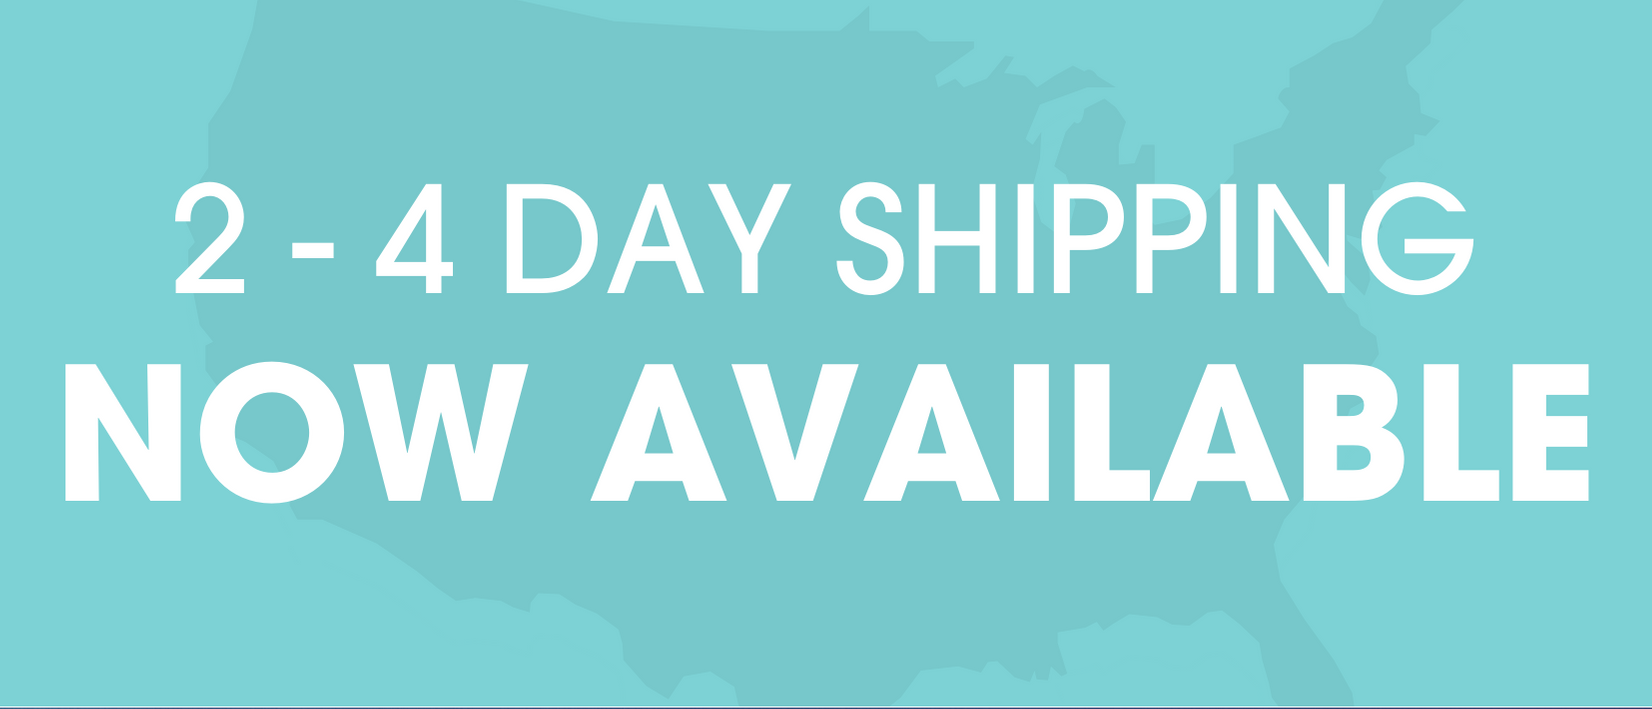 2-4 day shipping now available